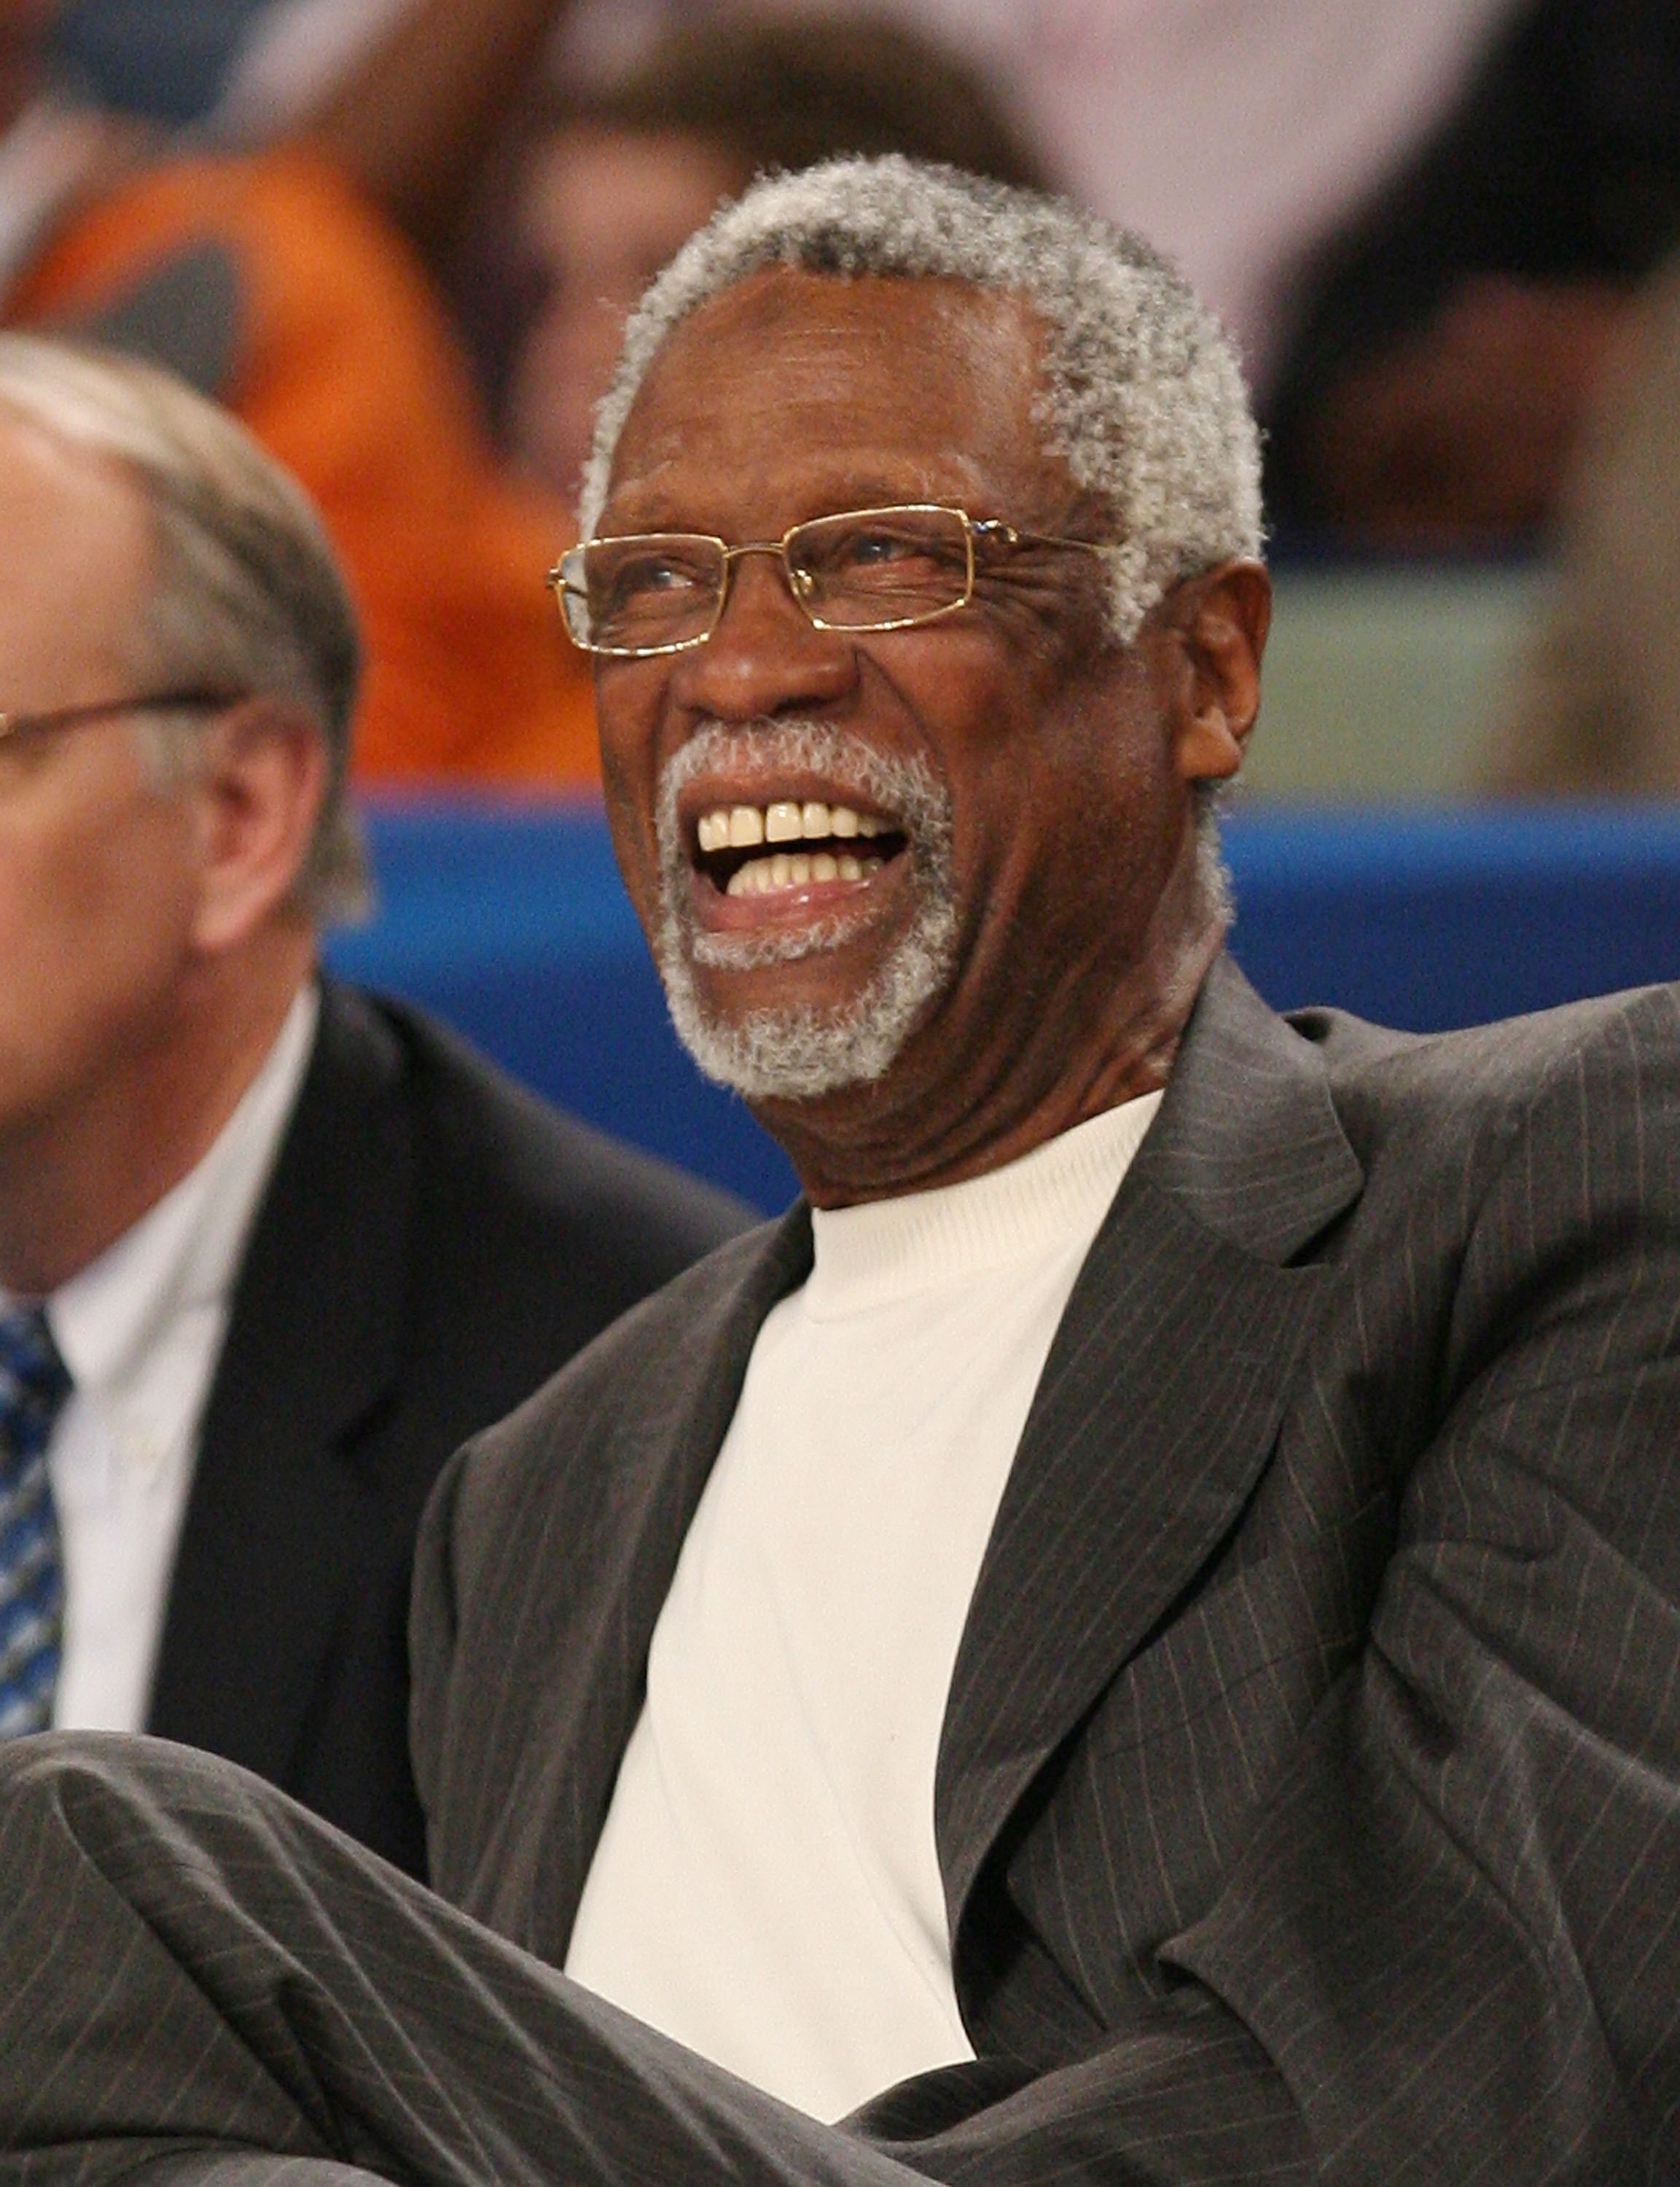 NEW ORLEANS - FEBRUARY 17:  Bill Russell attends the 57th NBA All-Star Game, part of 2008 NBA All-Star Weekend at the New Orleans Arena on February 17, 2008 in New Orleans, Louisiana.  NOTE TO USER: User expressly acknowledges and agrees that, by download